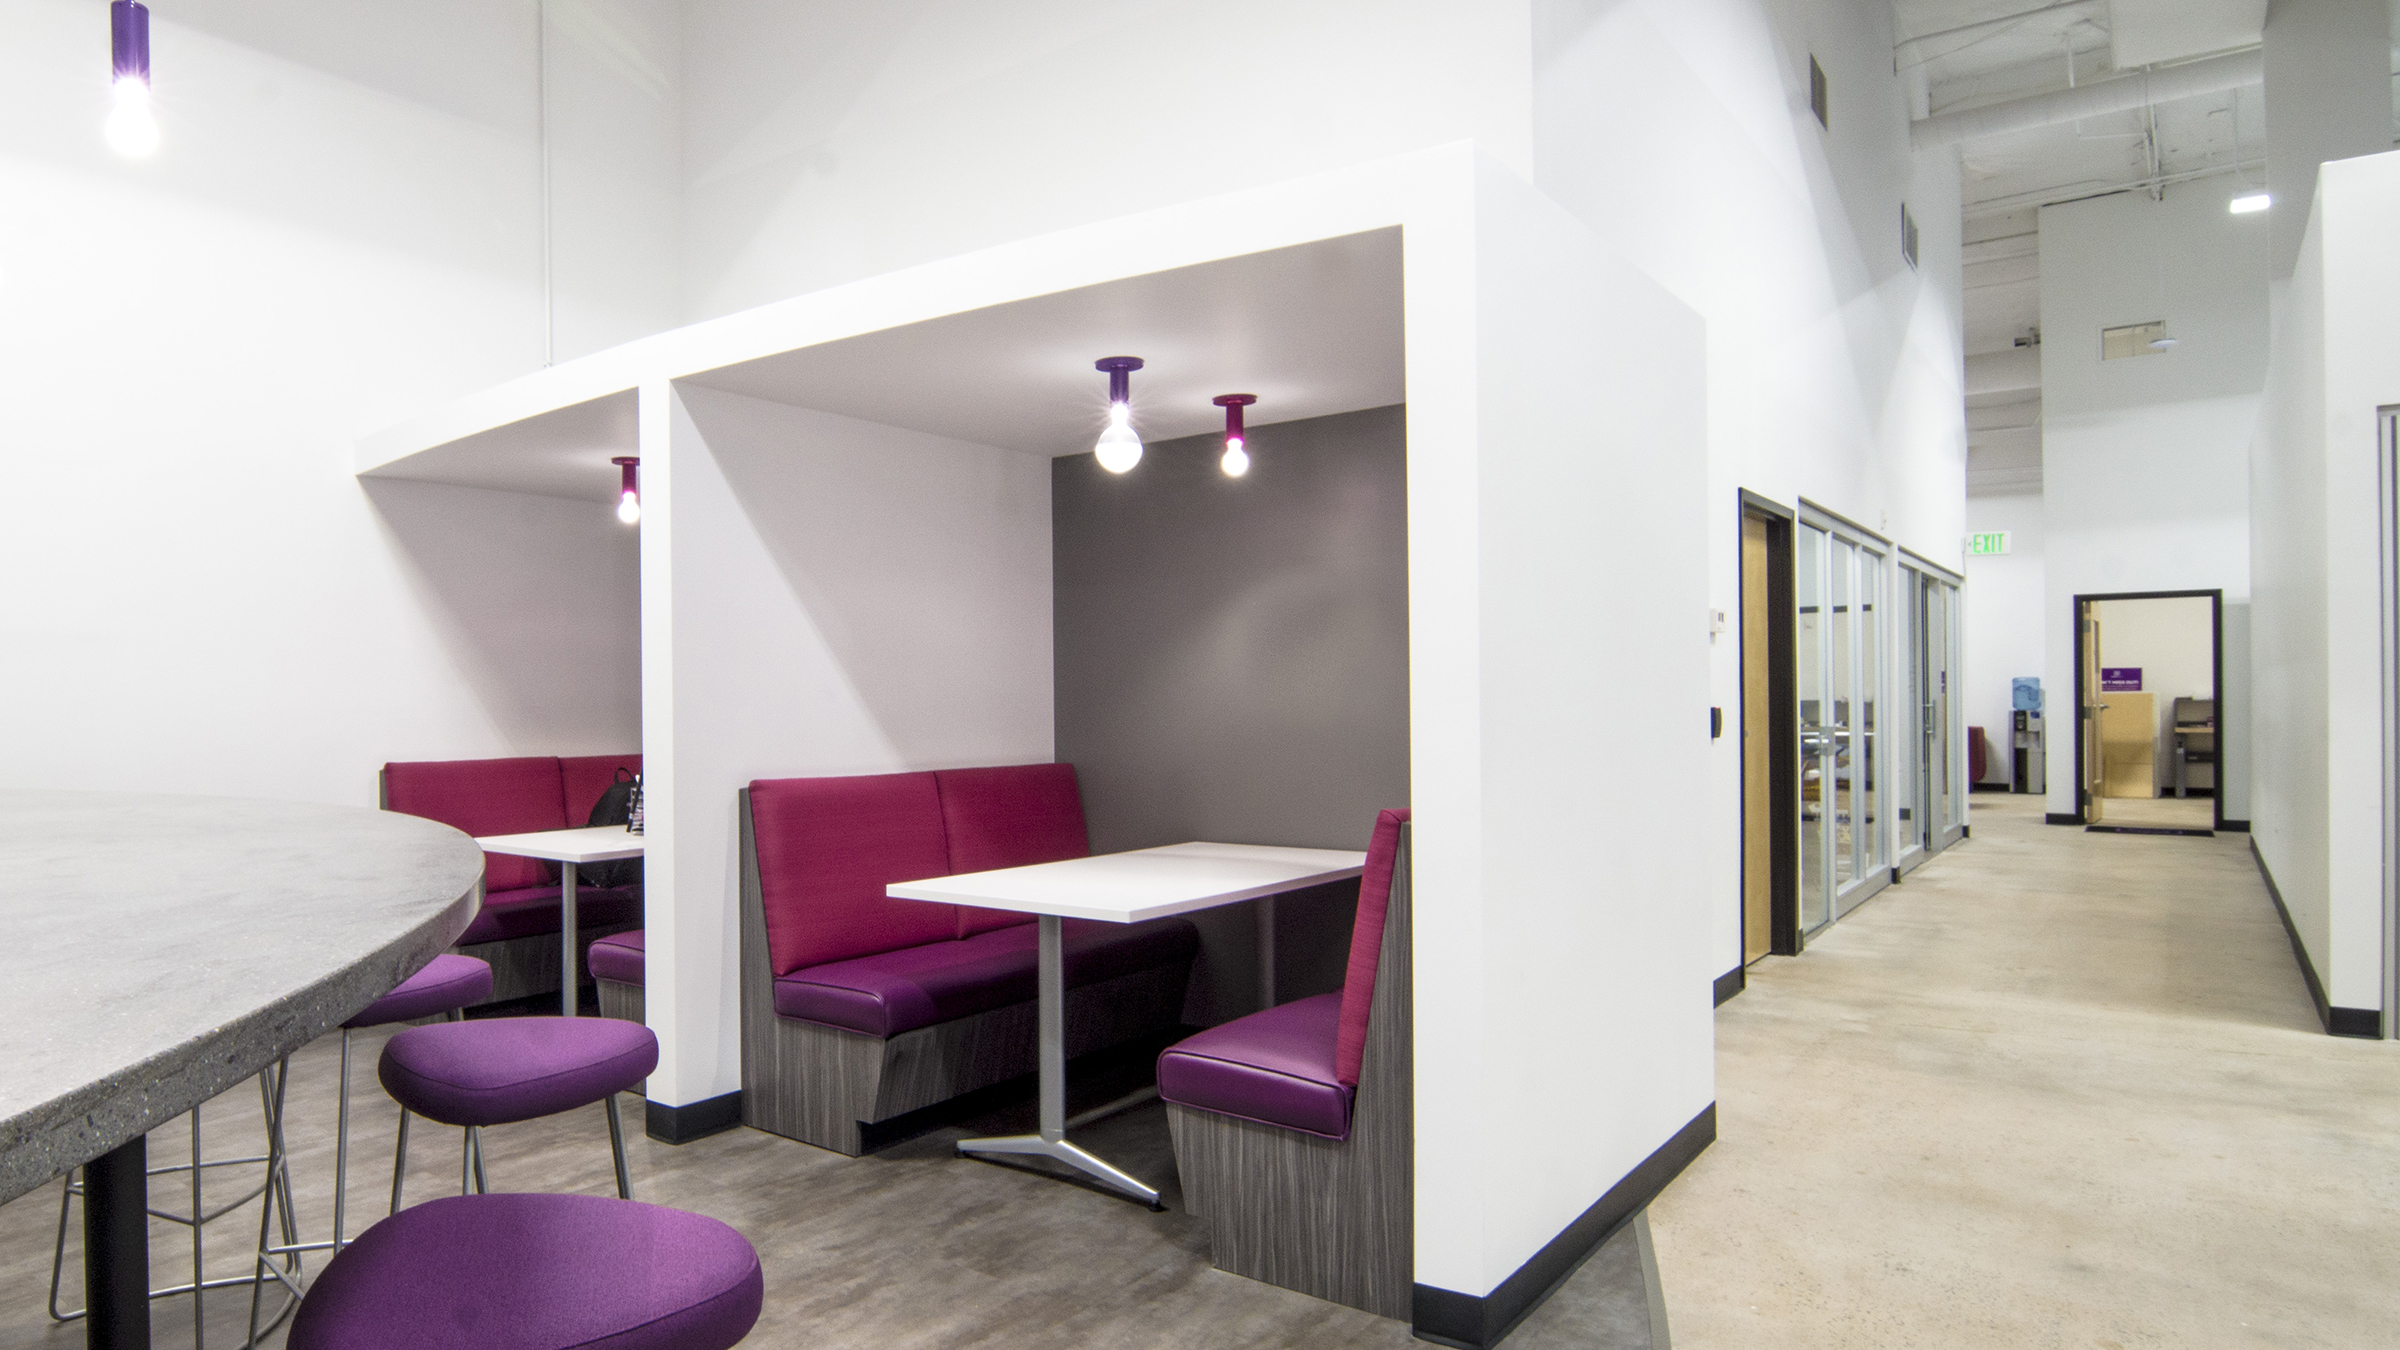 At the break room, Solderworks wanted to not just provide an area for storing and heating up lunches and snacks but an area with a sense of place. Additional tables and chairs were placed adjacent to the area and private booths were added. The owner liked the idea of a restaurant feel and the booths allow for semi-private meetings. Power access was added above the tables and small televisions will be installed to allow for each booth to become a rentable meeting space.